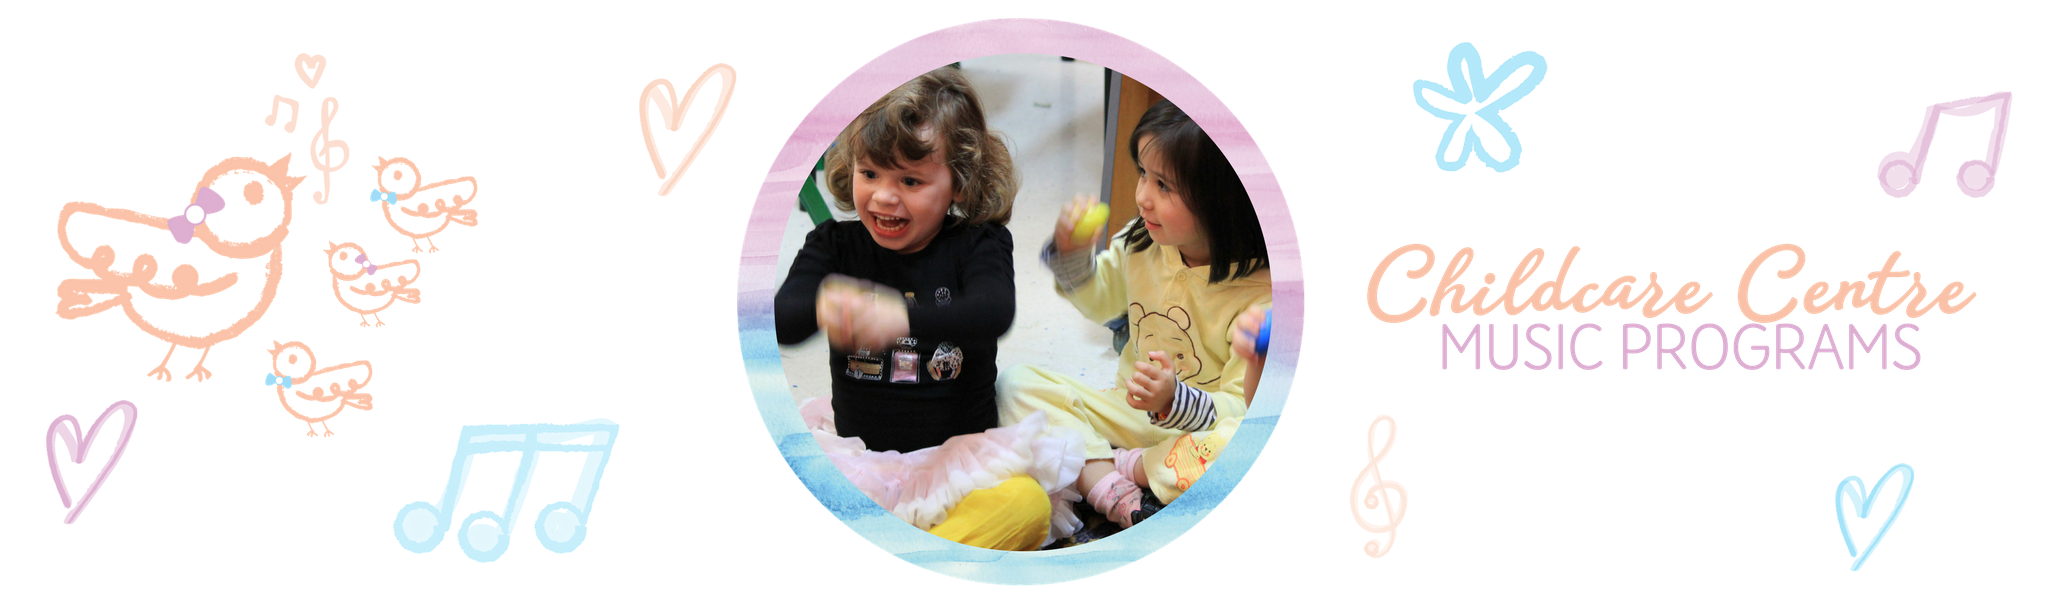 Childcare Ceentre Music Programs